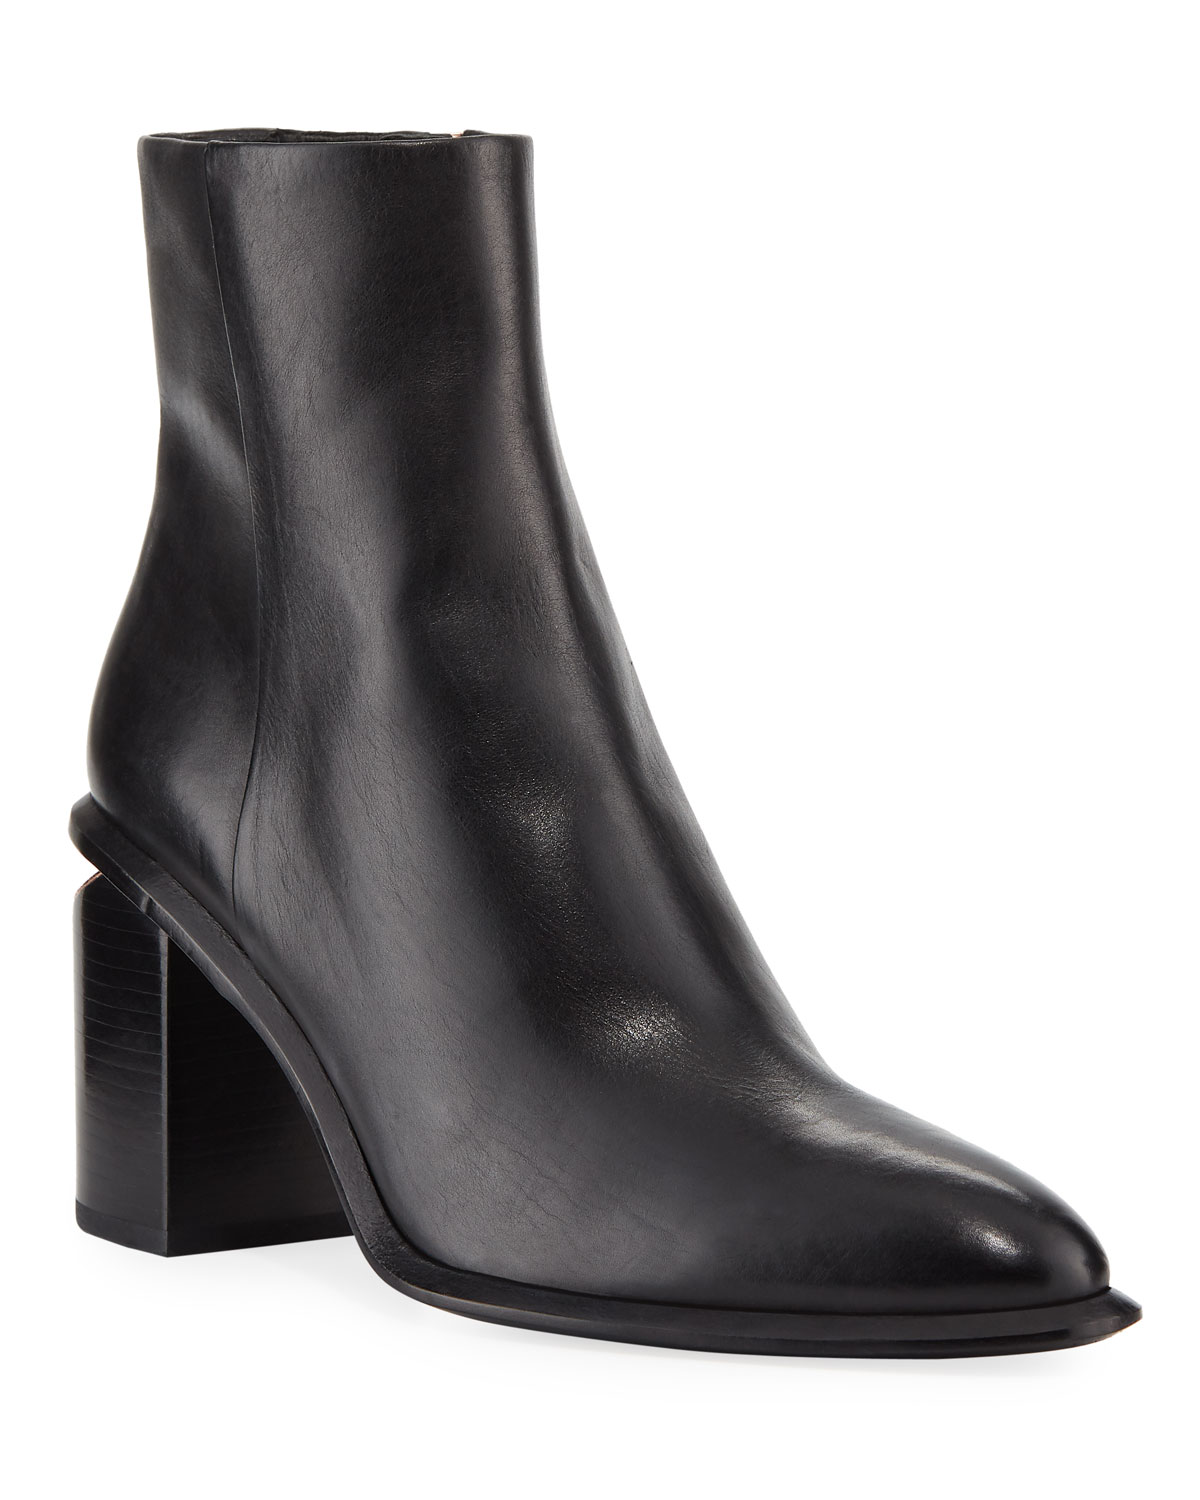 Anna Block-Heel Leather Booties - Rhodium-Tone Hardware in Black from FORZIERI